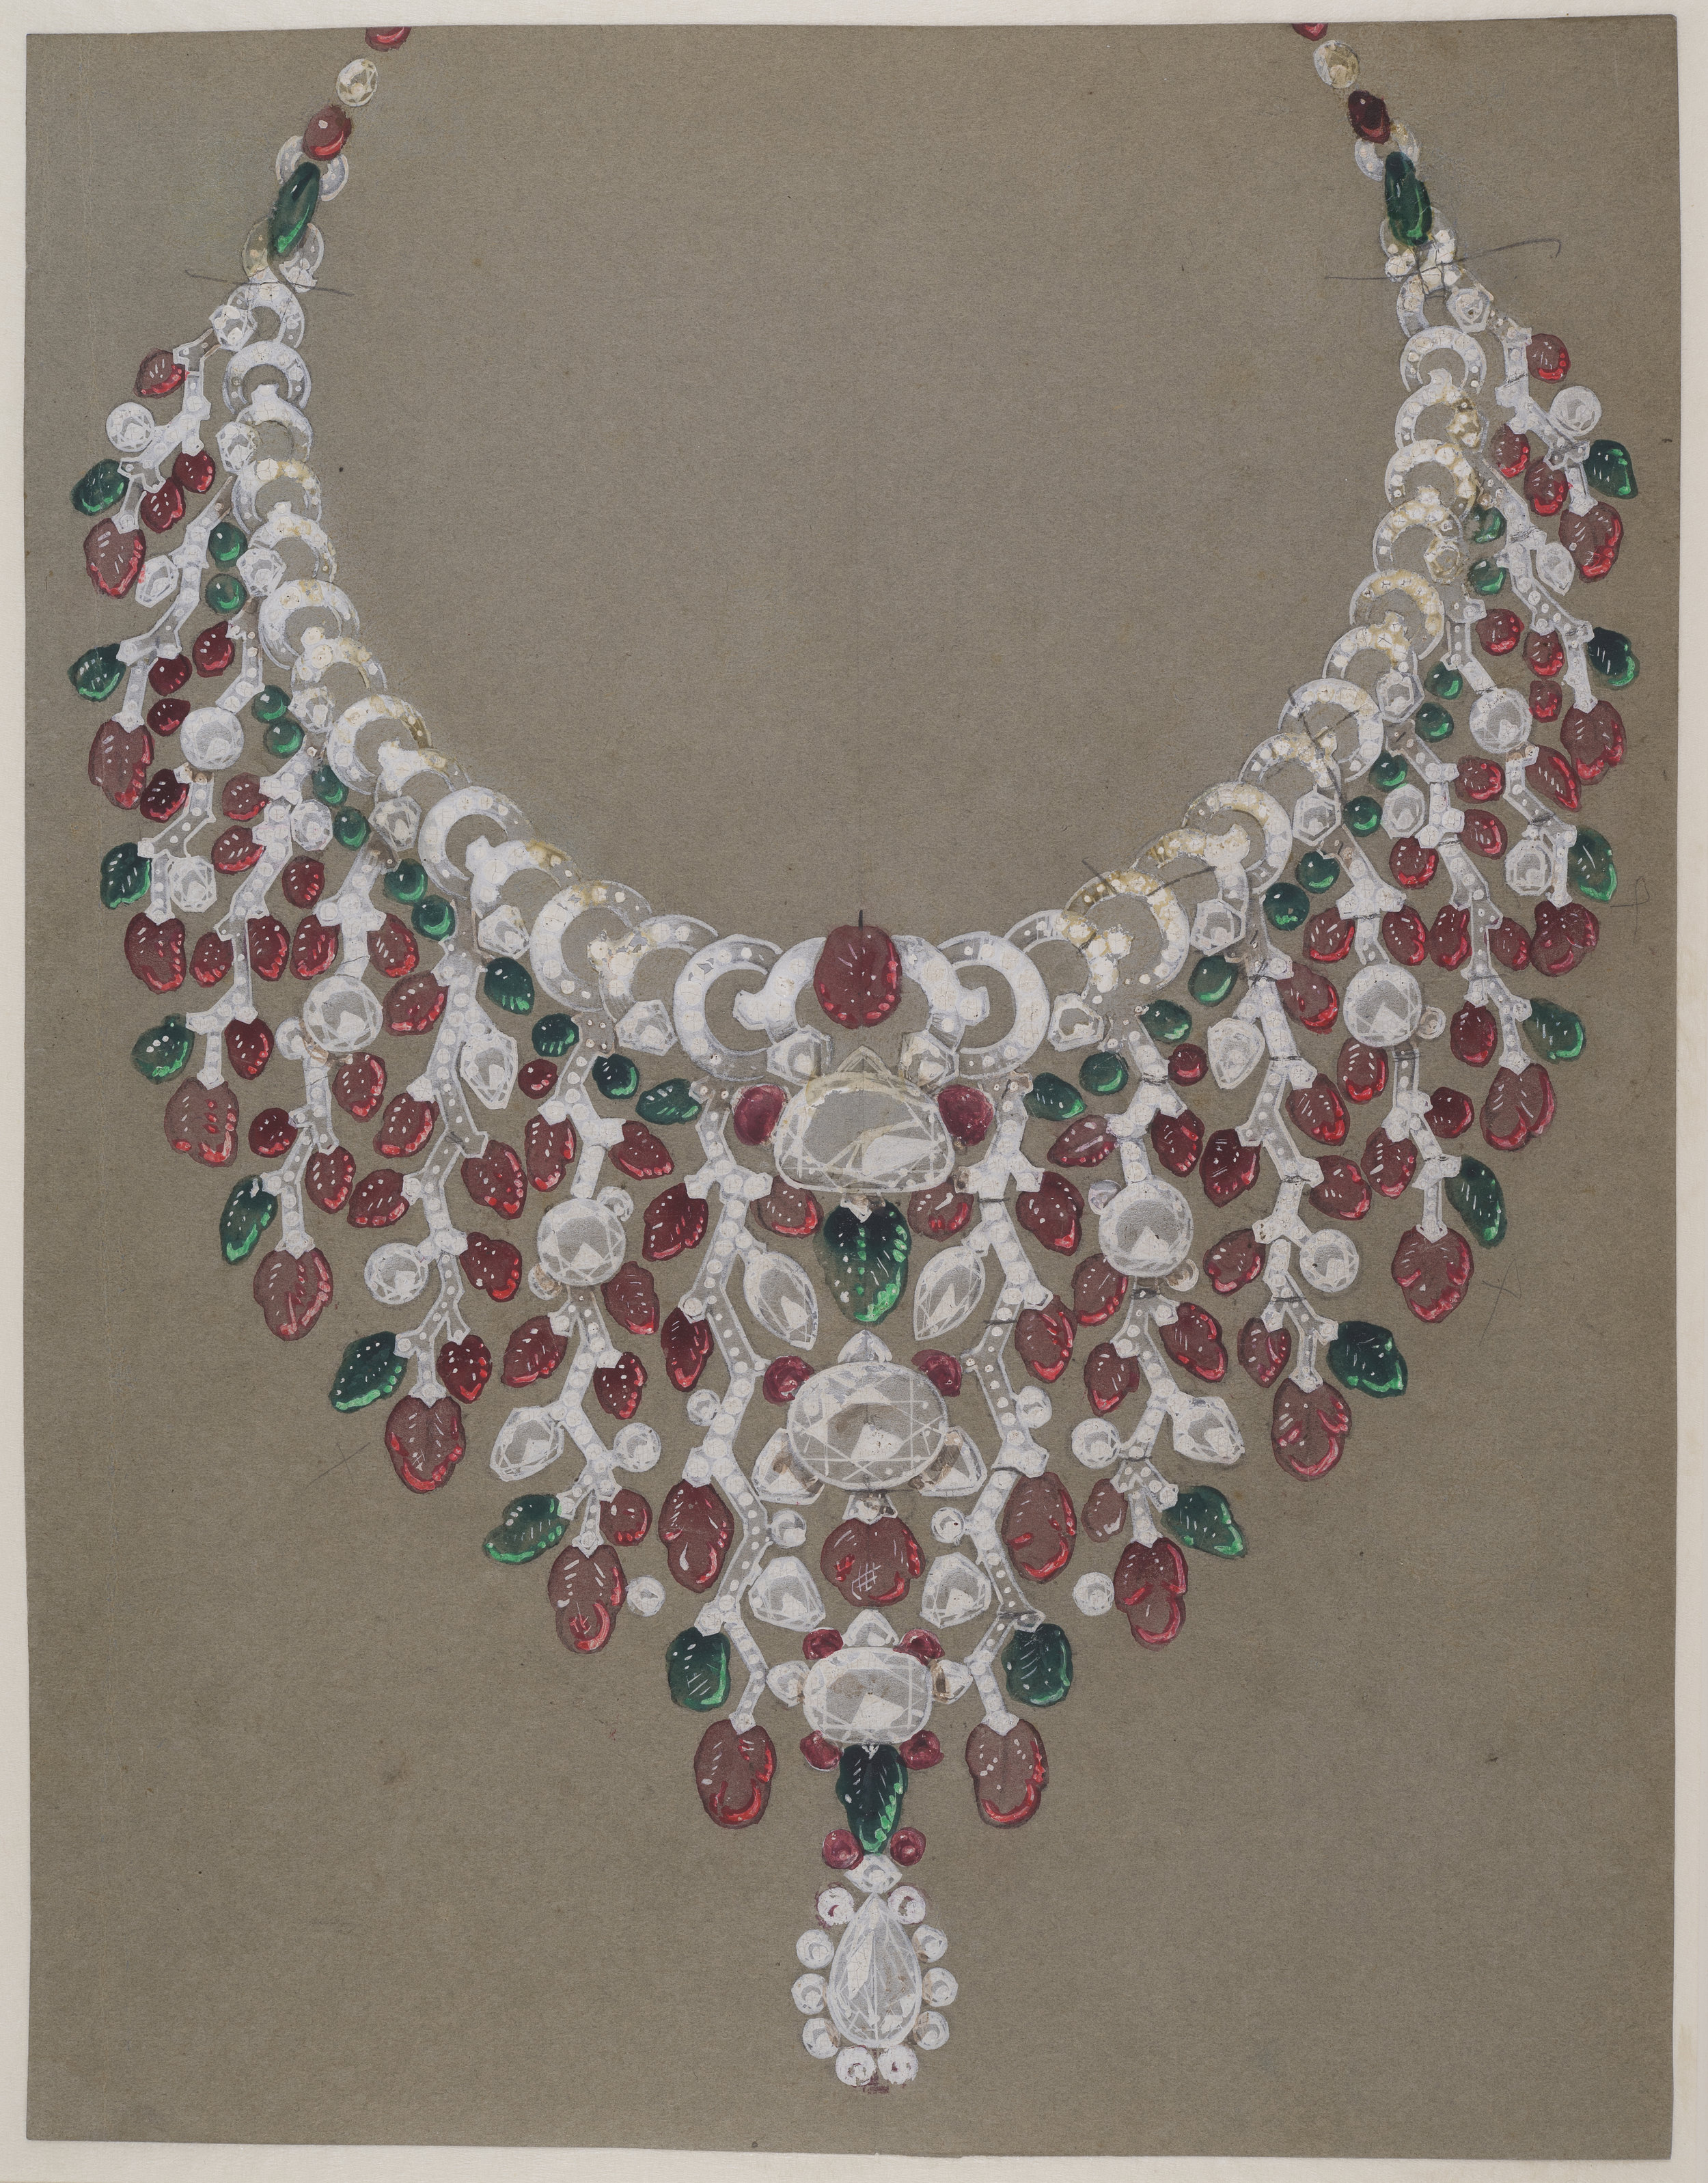 Drawing by Cartier in 1935 for a ruby and diamond necklace commissioned by the Maharani of Patna for her husband the Maharajah of Patna__© Van Cleef & Arpels_ from RUBY_published 2017.jpg